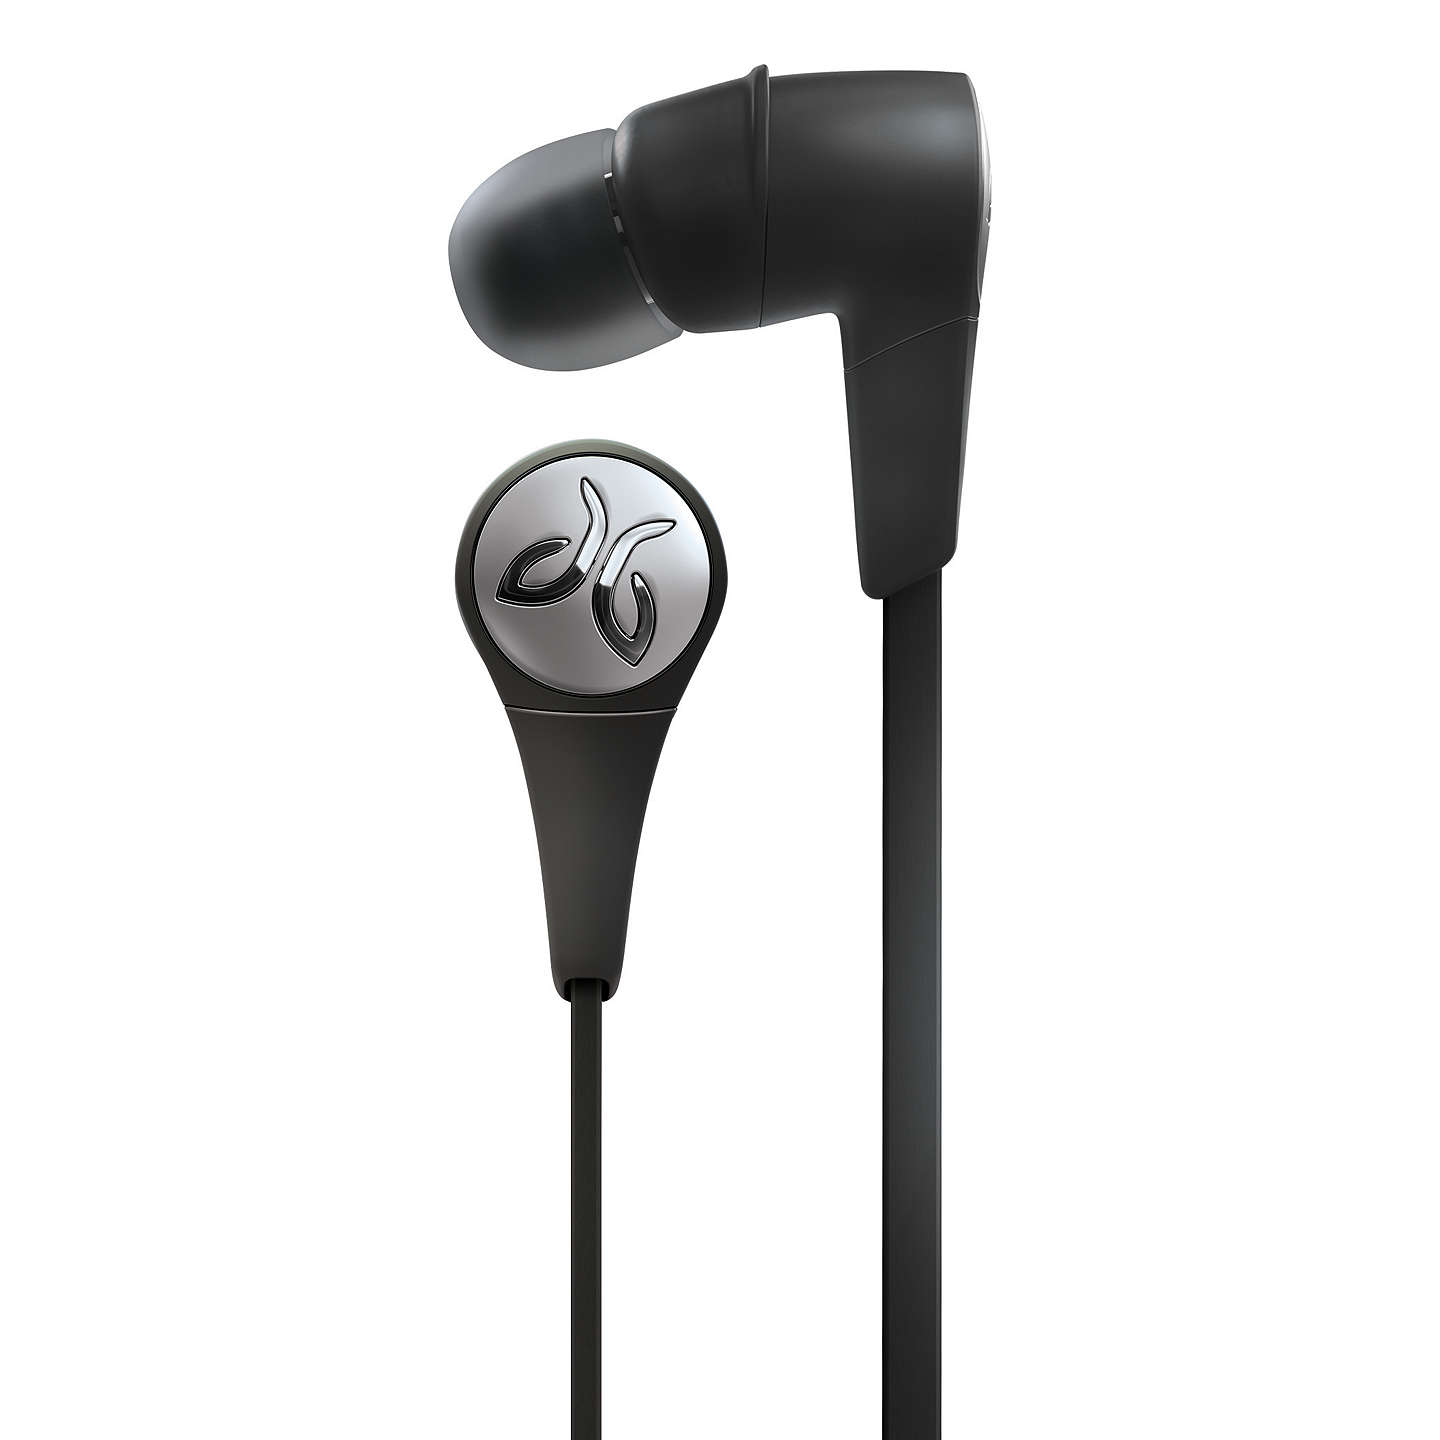 BuyJaybird X3 Sweat & Weather Resistant Bluetooth Wireless In-Ear Headphones with Mic/Remote, Blackout Online at johnlewis.com